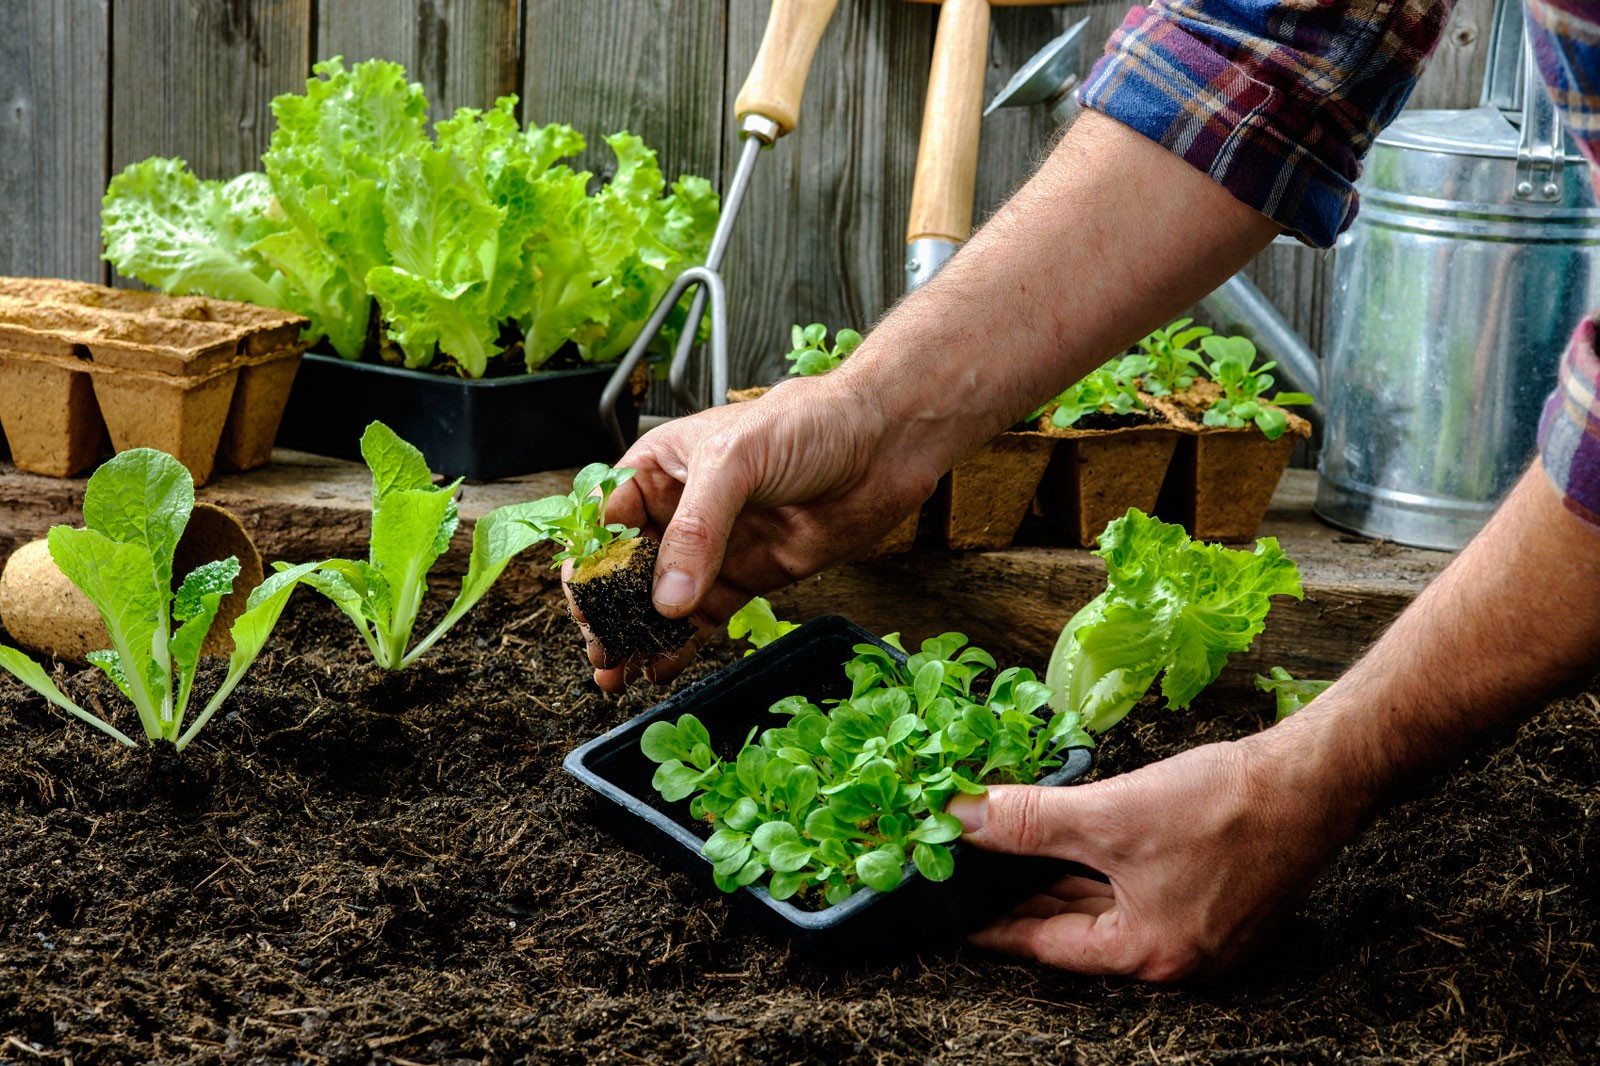 104 little tips to make and save money better humans growing your own vegetables and herbs takes some continuous effort and has a learning curve but it can be worthwhile and fun for your family to be able to fandeluxe Images